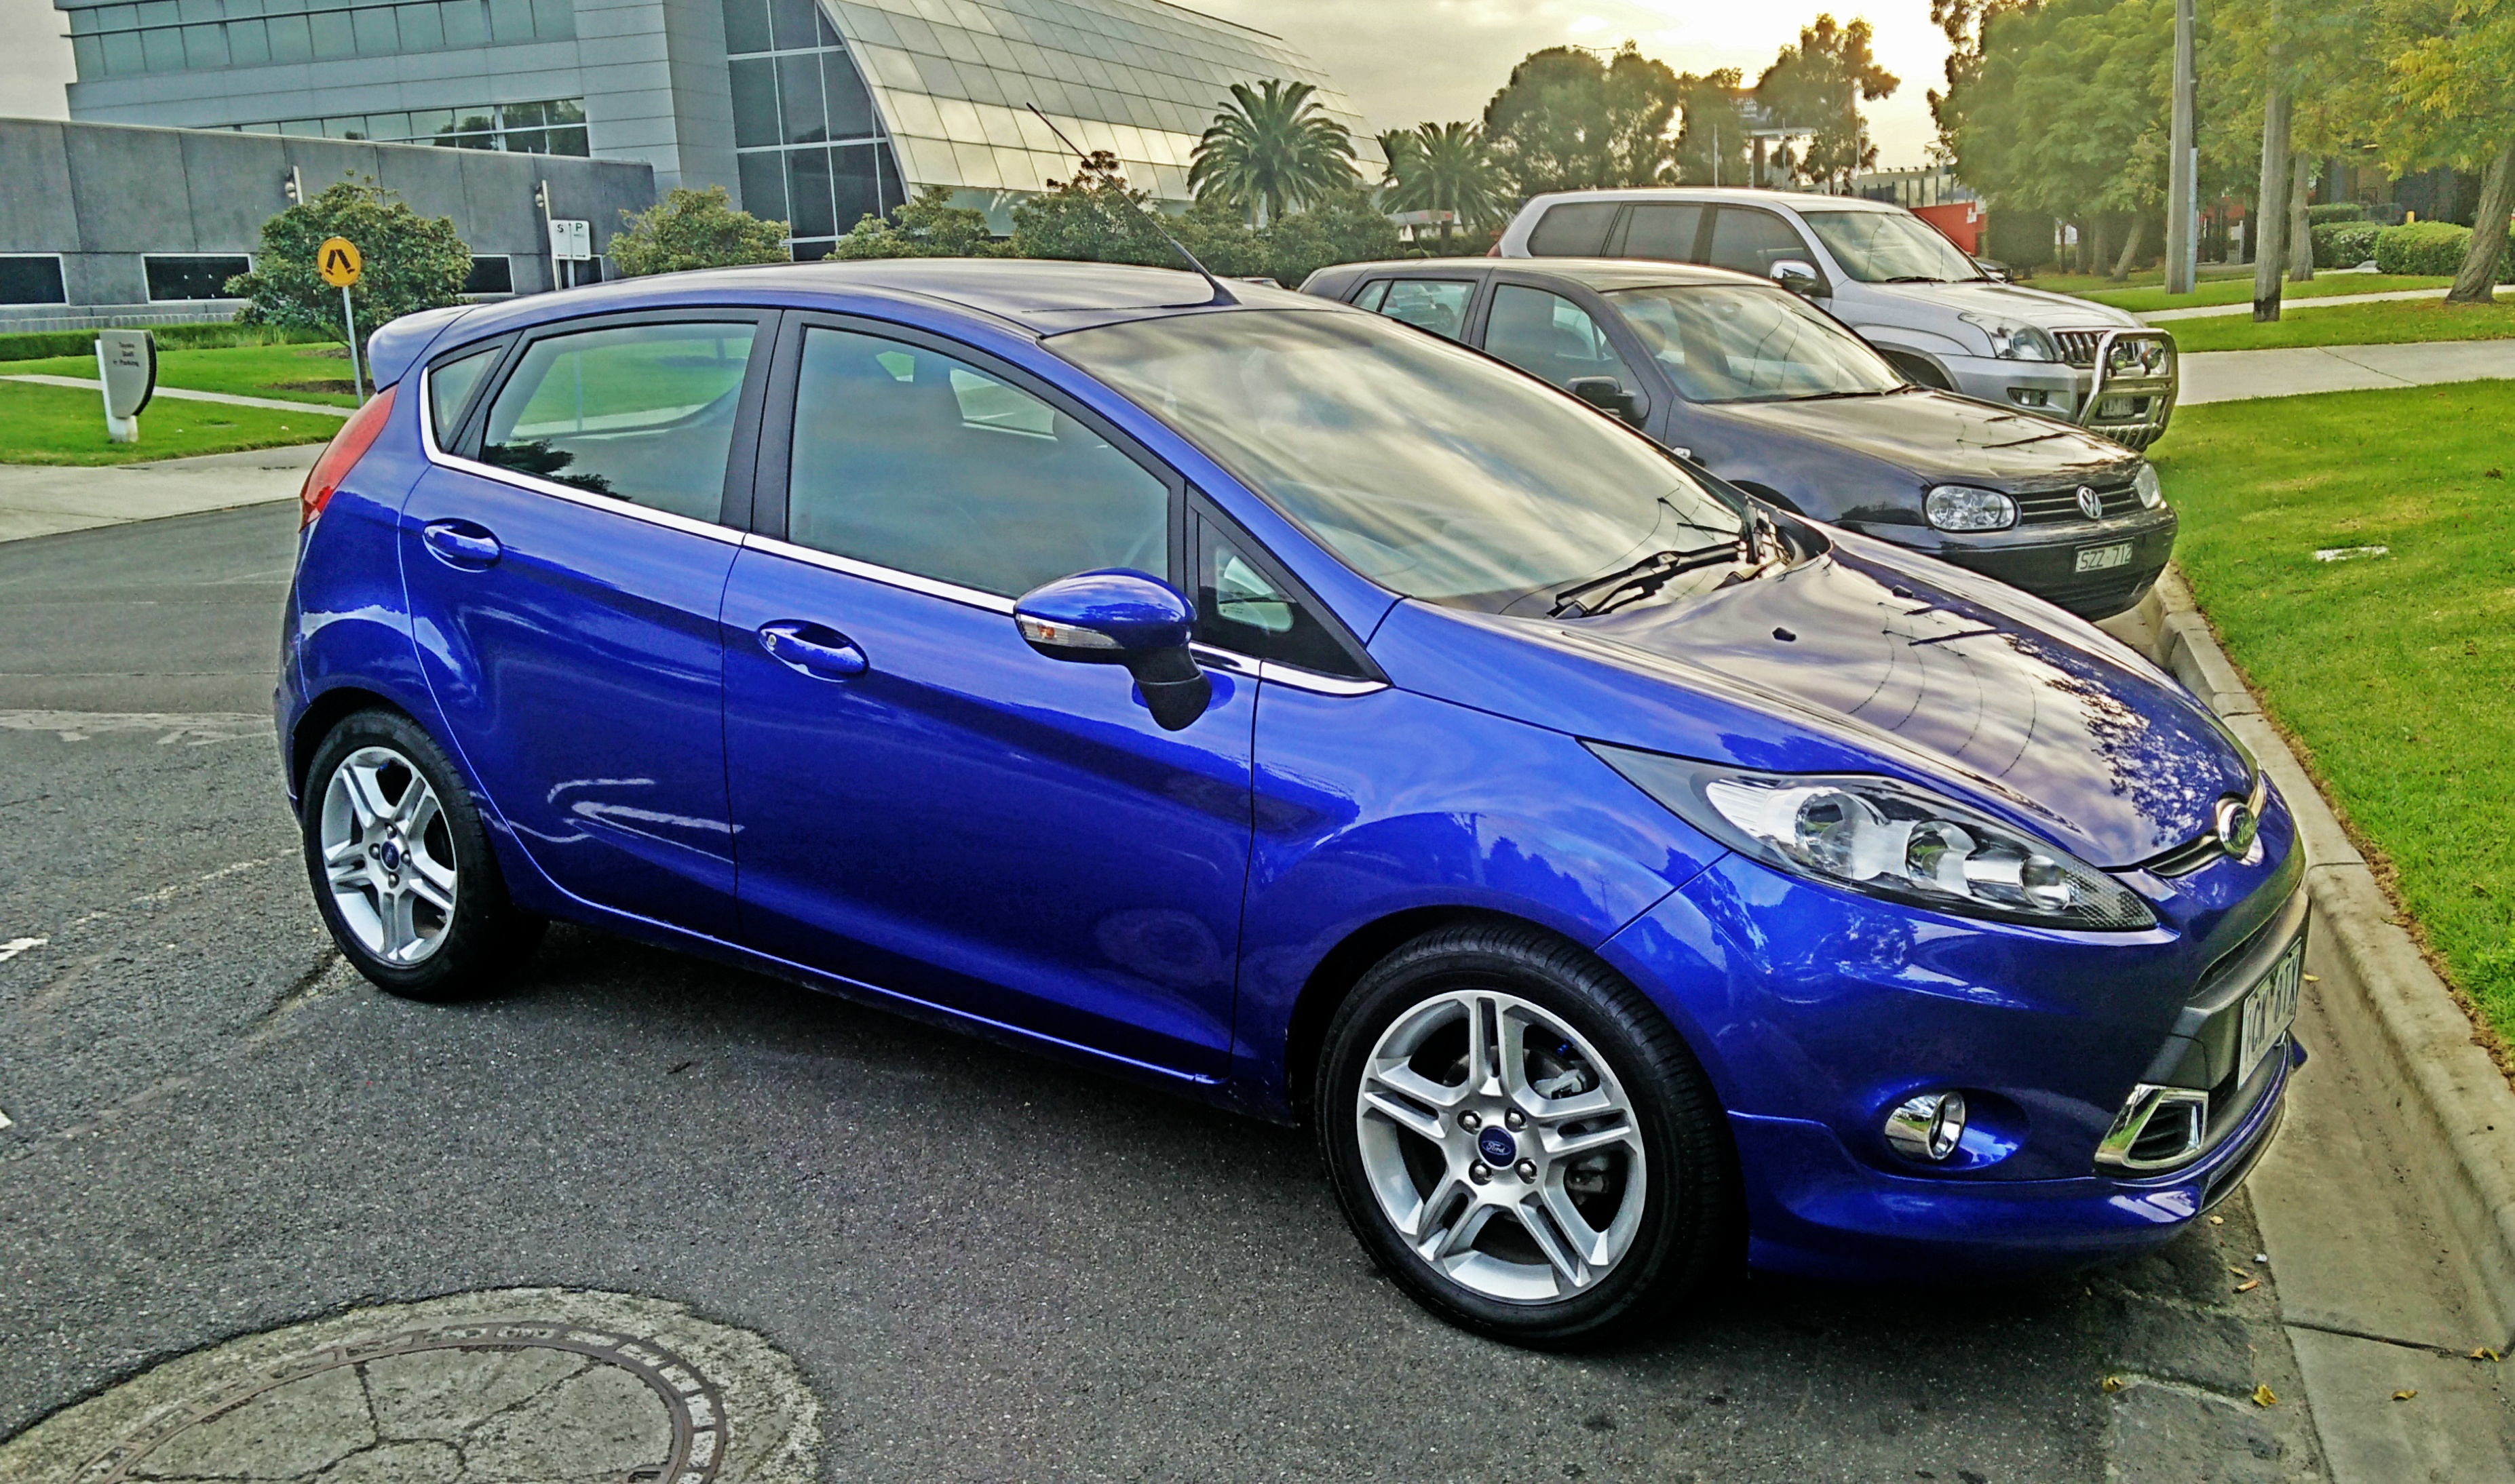 Picture of Habeeb's 2013 Ford Fiesta